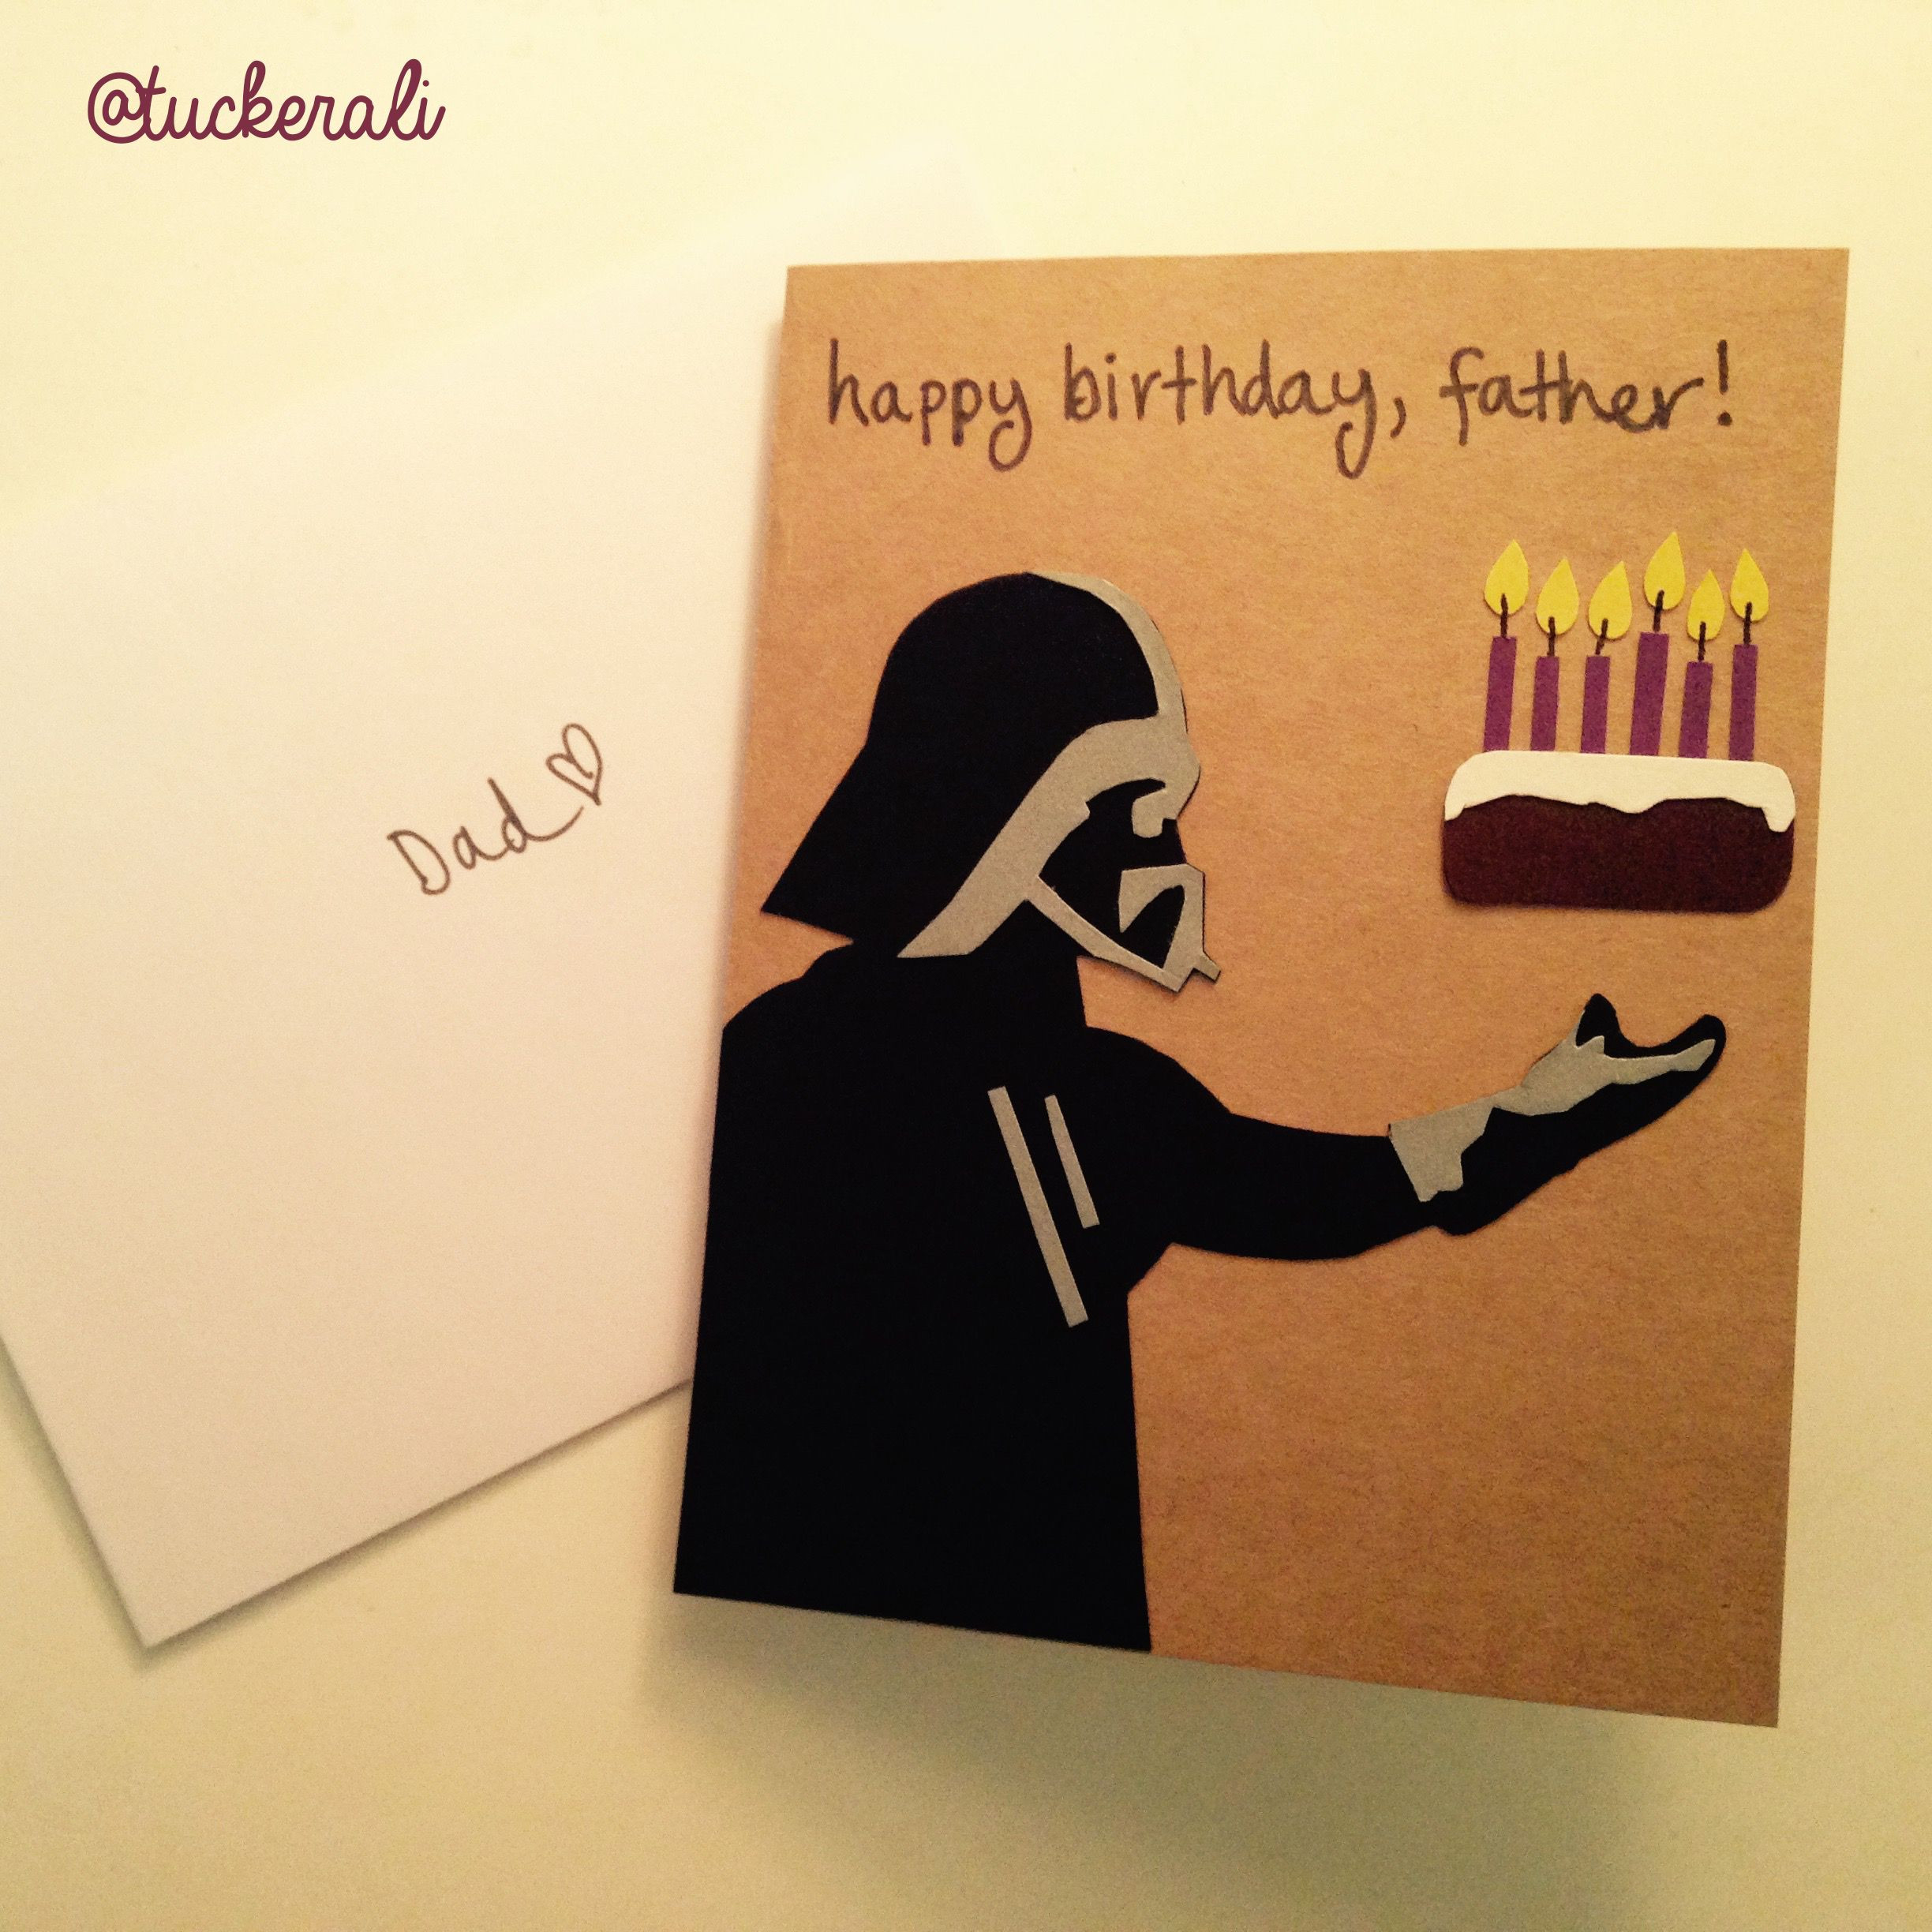 Ideas To Make A Birthday Card For A Best Friend Make Birthday Cards Handmade Birthday Card Ideas For Best Friend